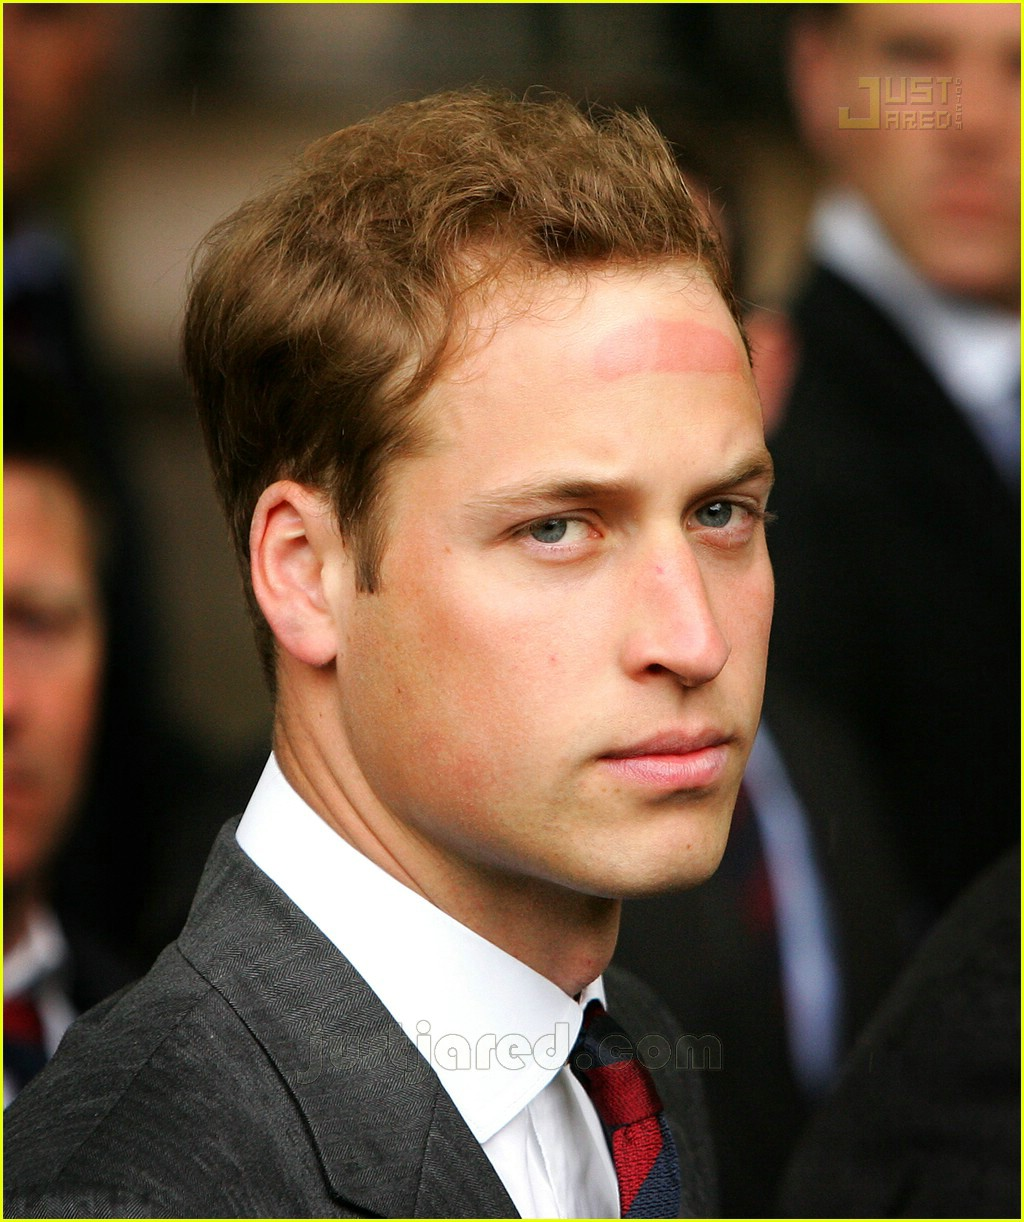 become a helicopter pilot with Prince William on Prince William besides Snoopy Wallpaper Wallpaper in addition Nypd Aviation Unit also Biggest Plane Antonov An 225 Mriya also How Prince Harry Is Defining His Place In The Royal Family Before He Gets Married.